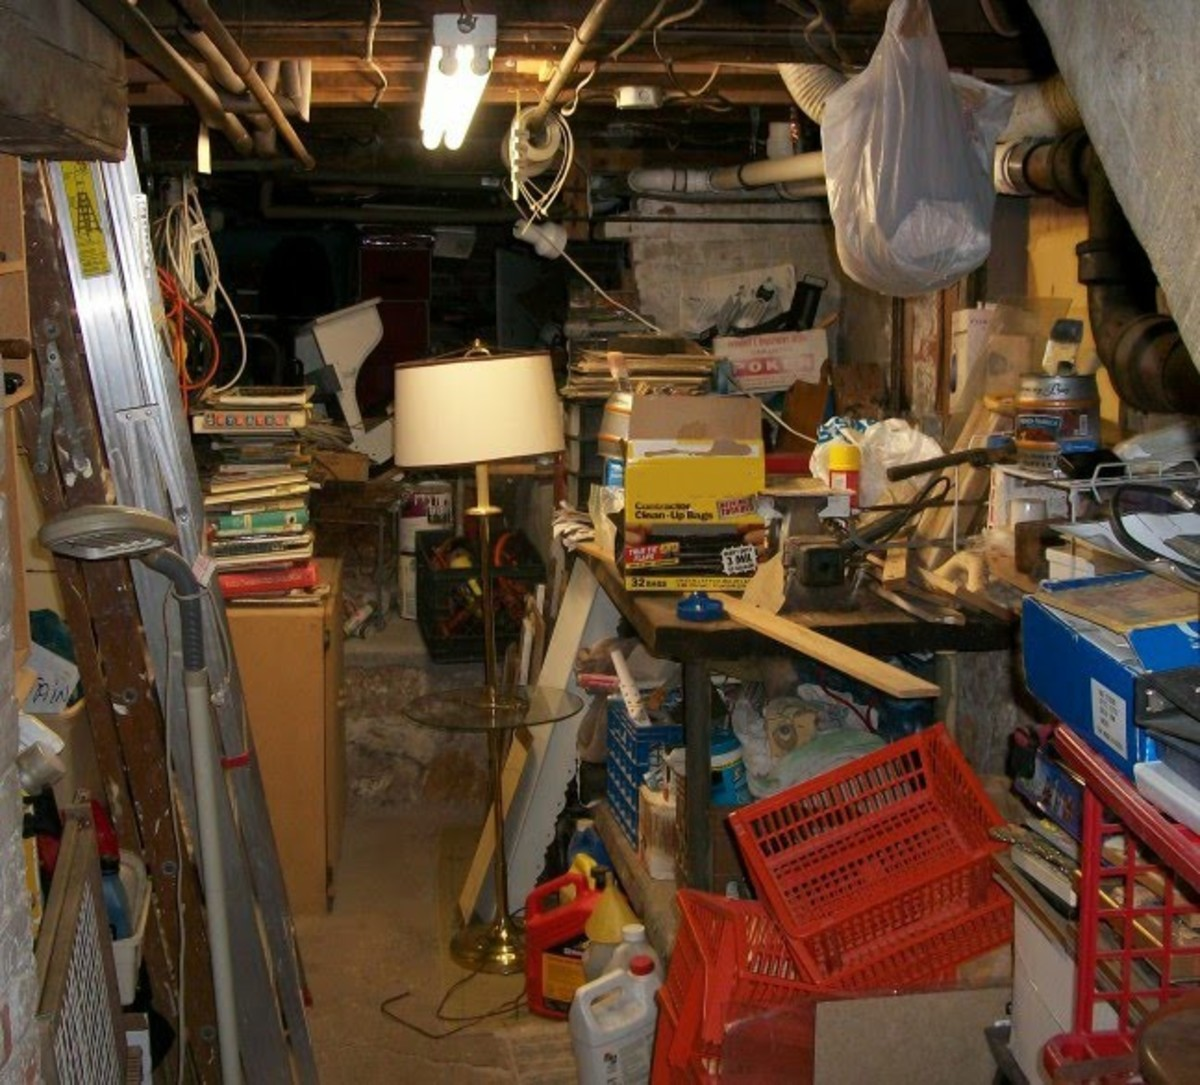 Can't seem to get around to organizing basement clutter?